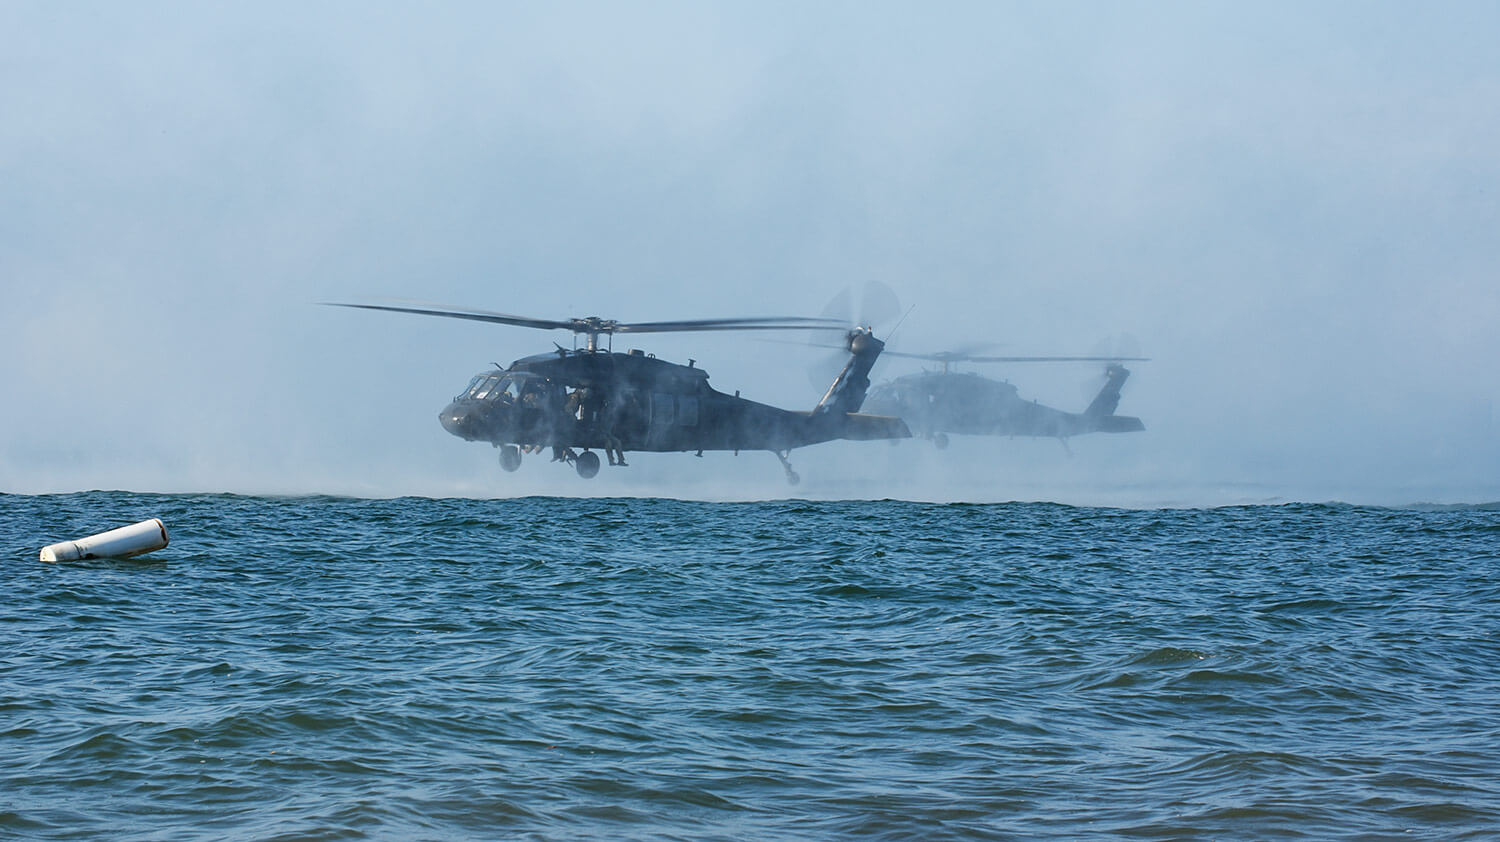 Virginia National Guard flight crews provide aviation support to Soldiers assigned to the West Virginia National Guard's 19th Special Forces Group, Sept. 5, 2018, over Lake Erie in Hamburg, N.Y., just south of Buffalo. The flight crews, assigned to the Sandston-based 2nd Battalion, 224th Aviation Regiment, 29th Infantry Division, dropped operators into the lake as part of an evaluation and pre-deployment train-up while boats from the Hamburg Water Rescue, Hamburg Police Department, U.S. Coast Guard and Department of Homeland Security worked together to retrieve the troops and return to the dry land. Virginia Army National Guard photo by SFC Terra C. Gatti